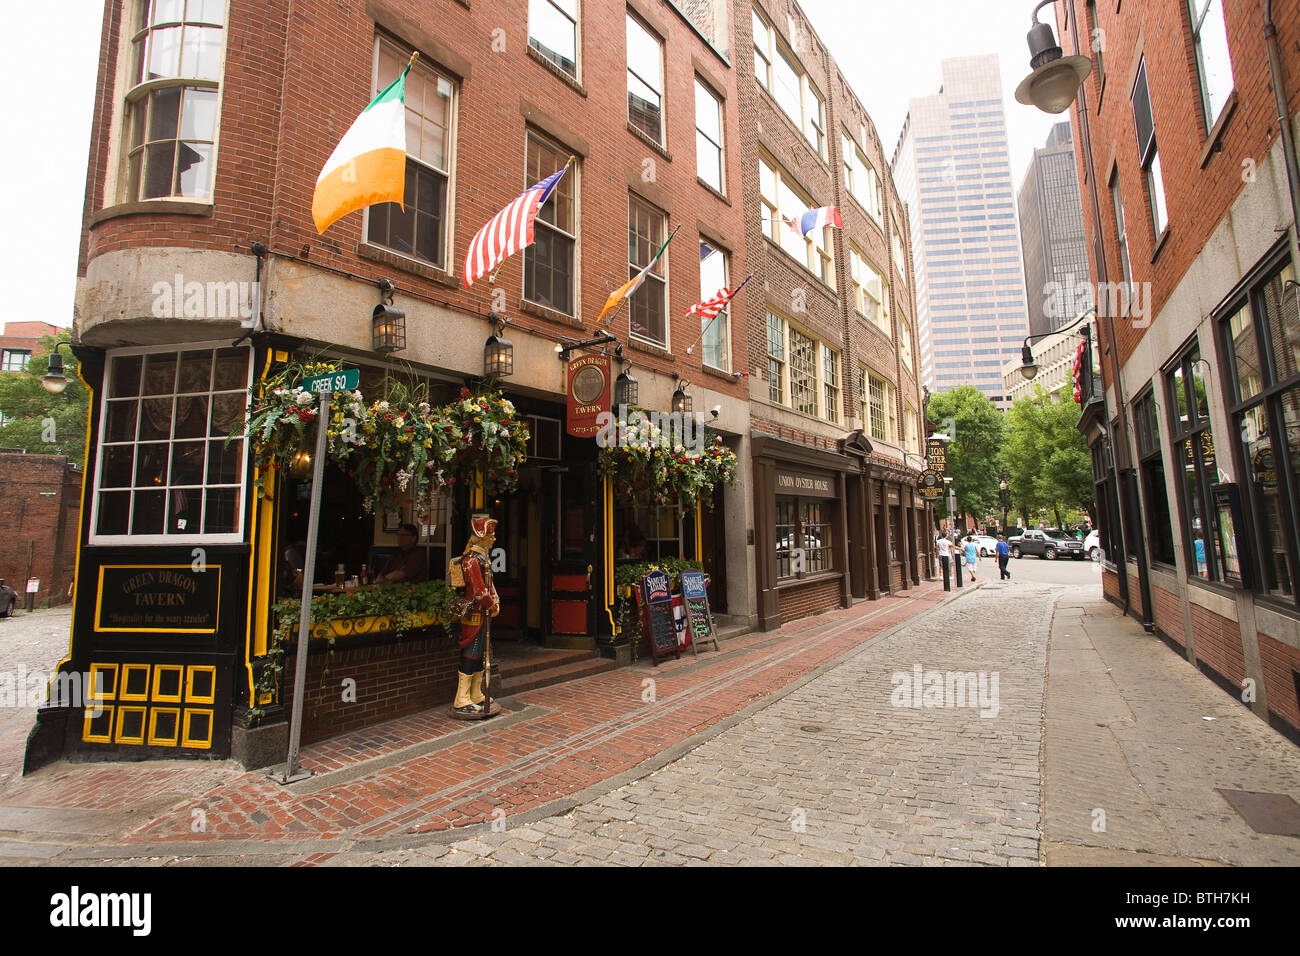 Cobblestone Street dans le centre-ville de Boston, Massachusetts Photo Stock